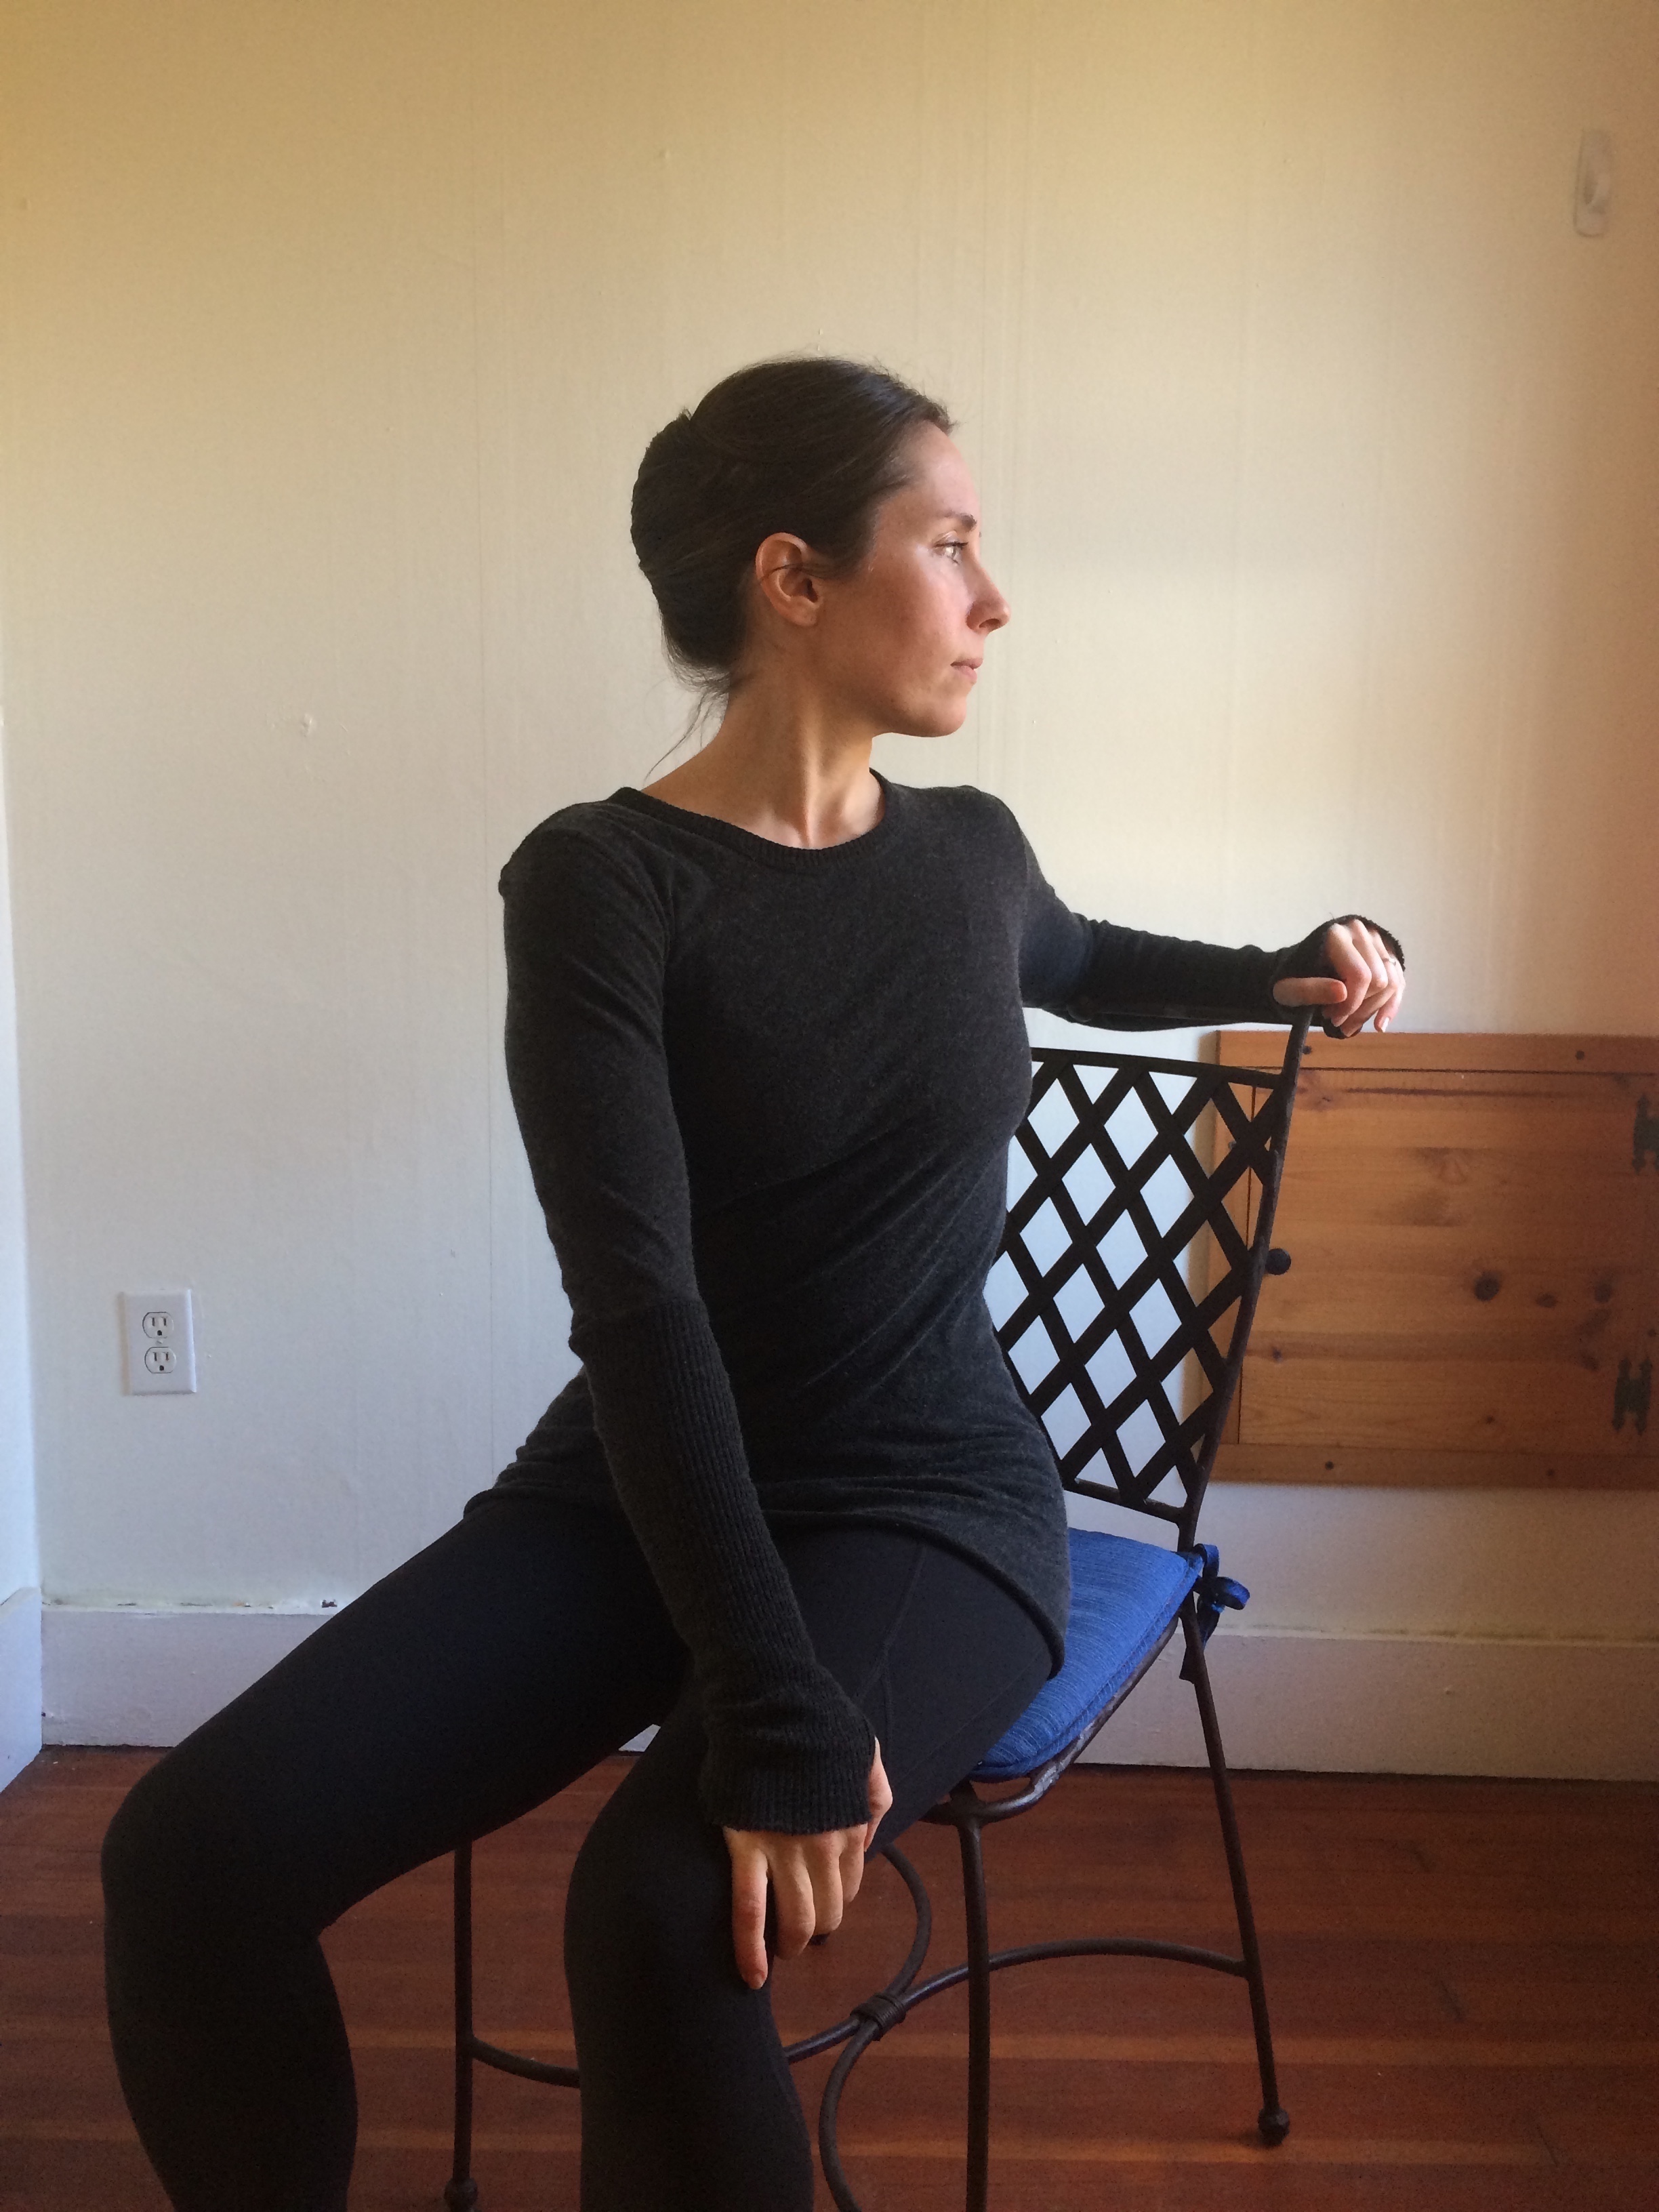 Seated Twist, twist with chair, gentle twist, yoga at your office desk